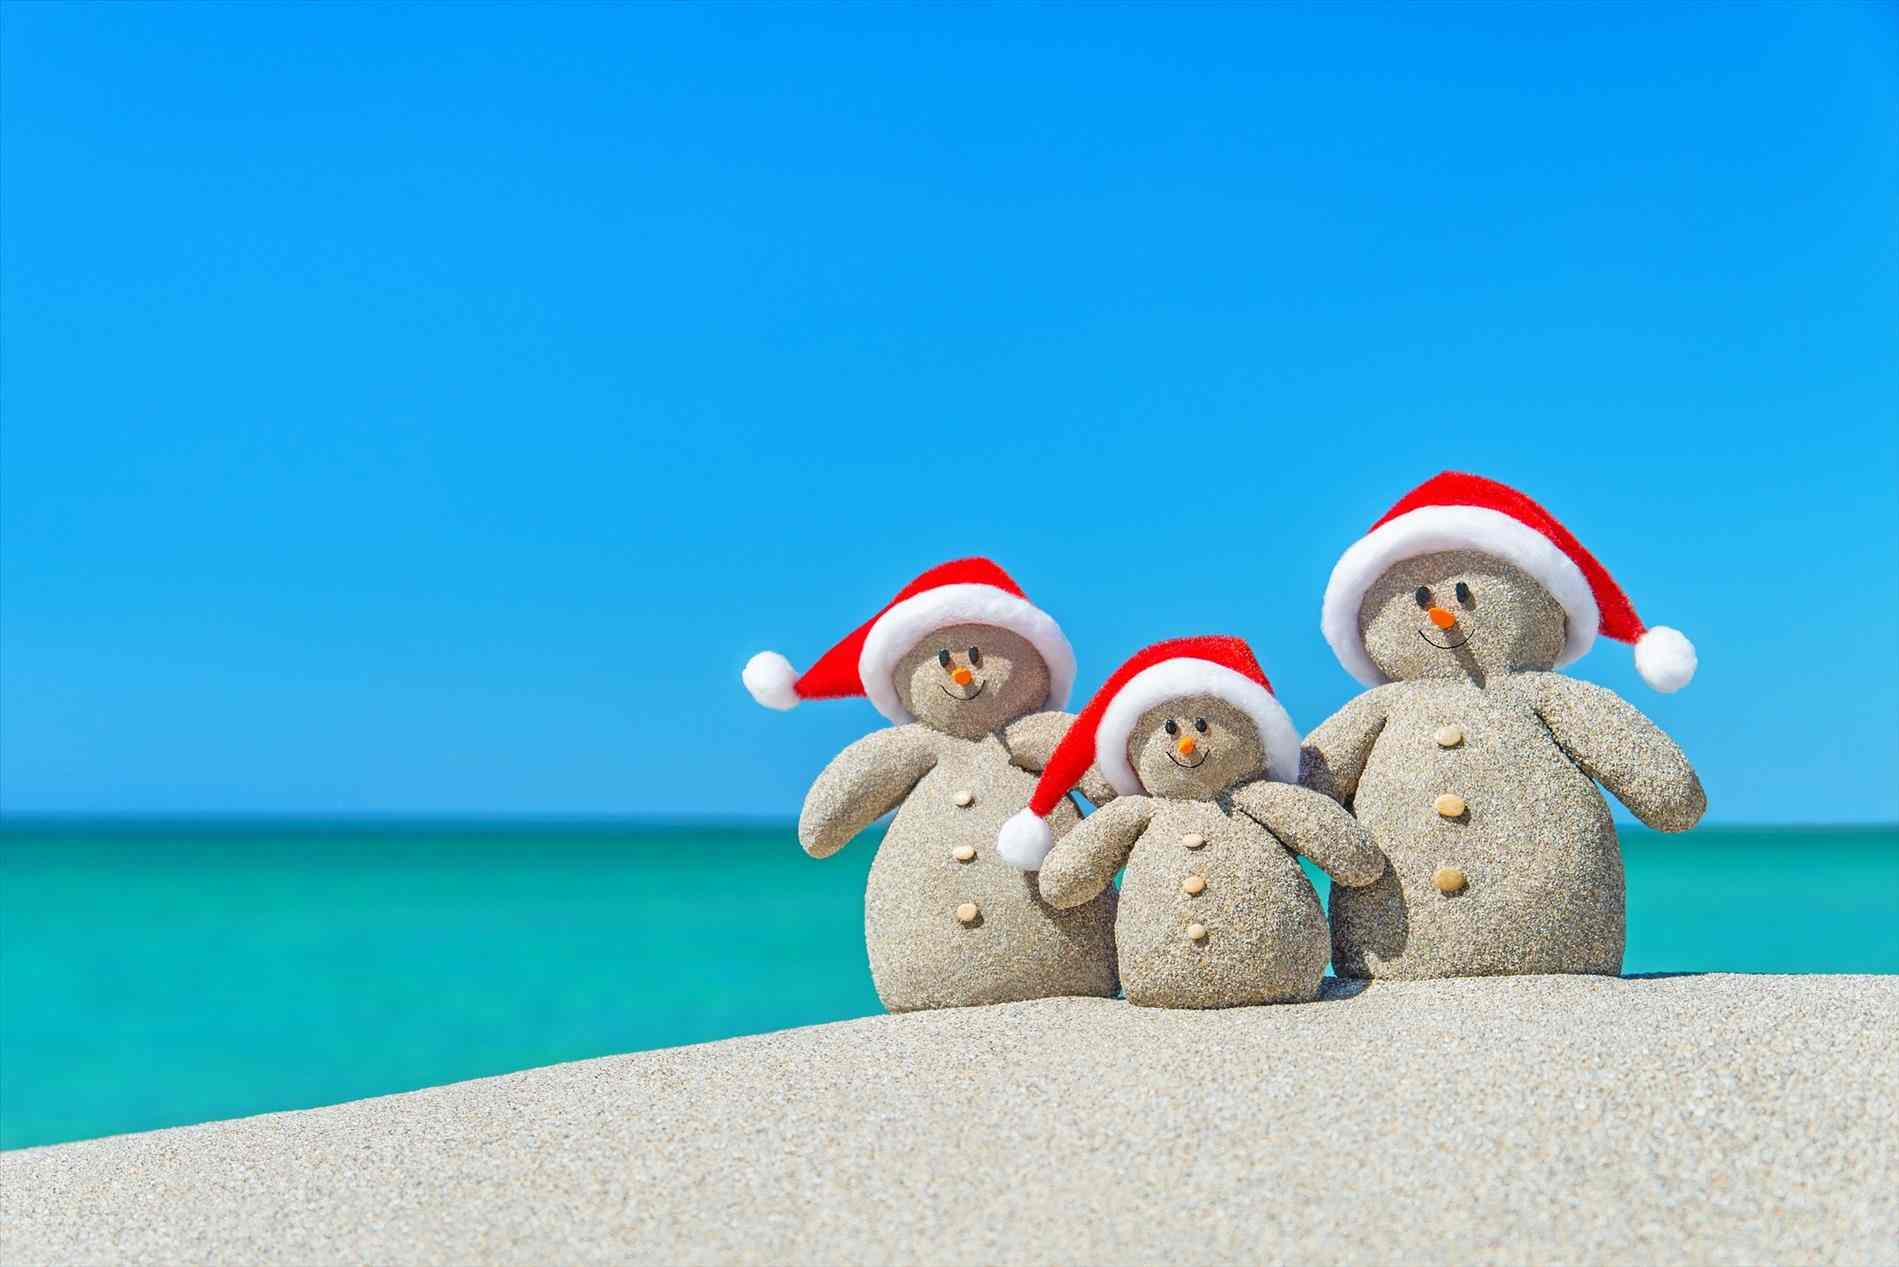 Temporary business close downs and staff annual leave (e.g. Christmas time)